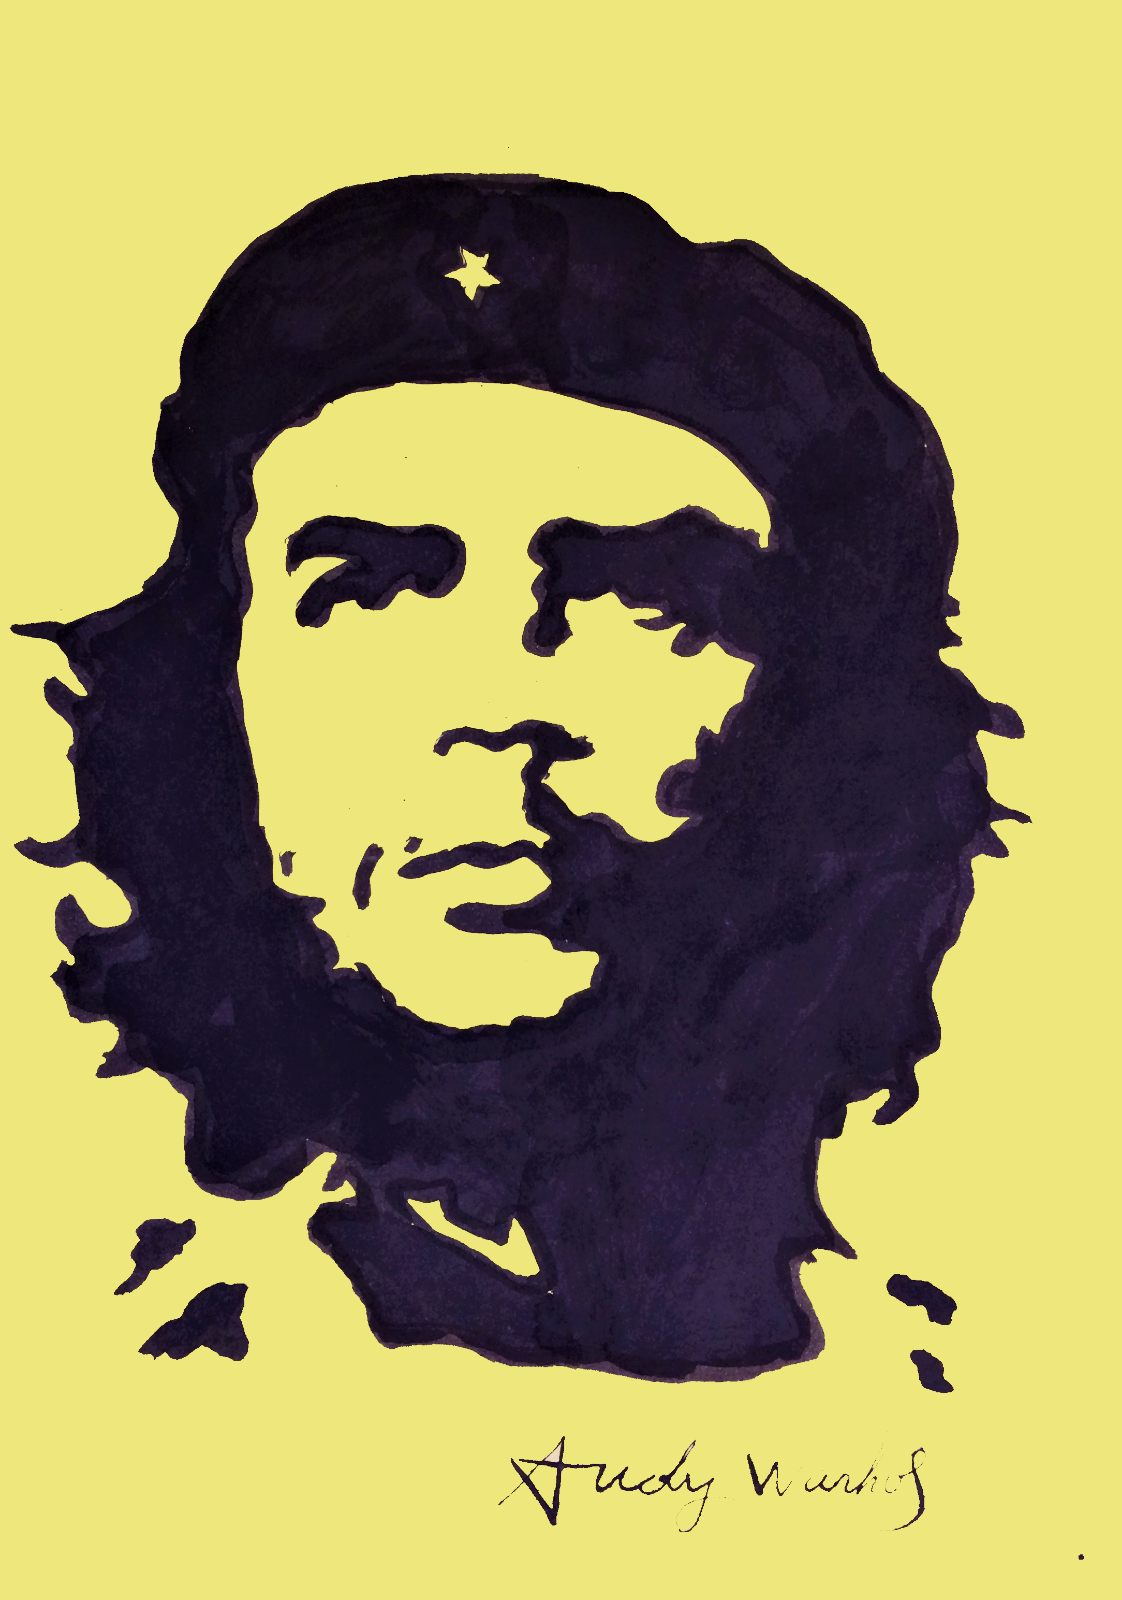 Andy Warhol Hand Drawn Signed Watercolor Che Guevara Watercolor Drawing Andy Warhol How To Draw Hands